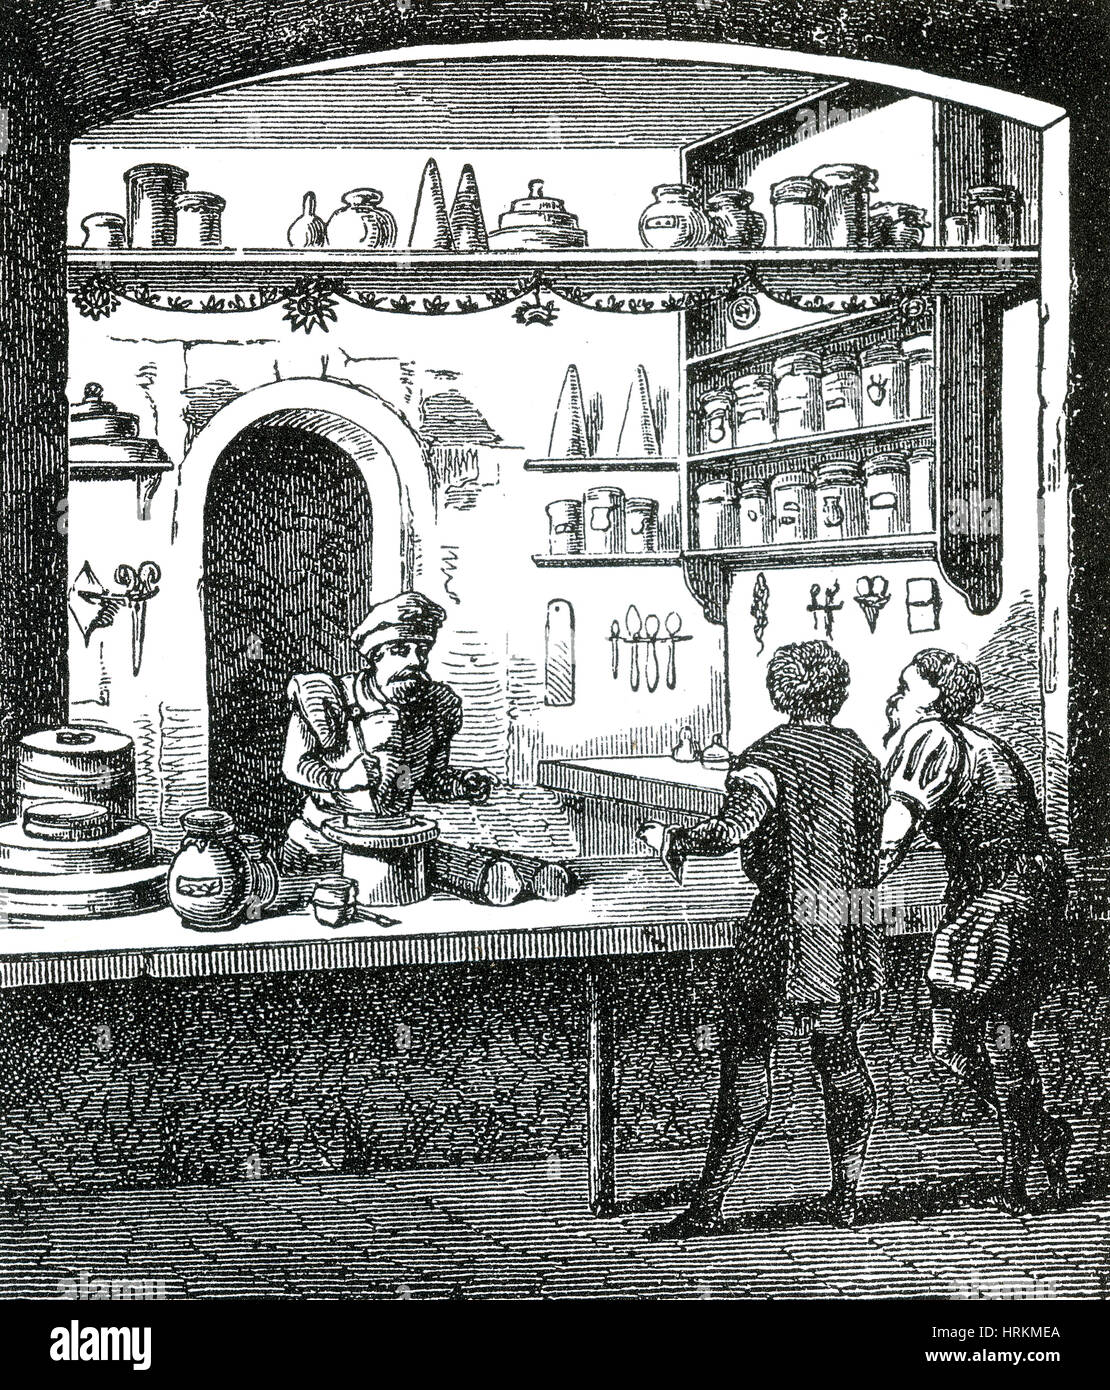 Medieval Apothecary - Stock Image